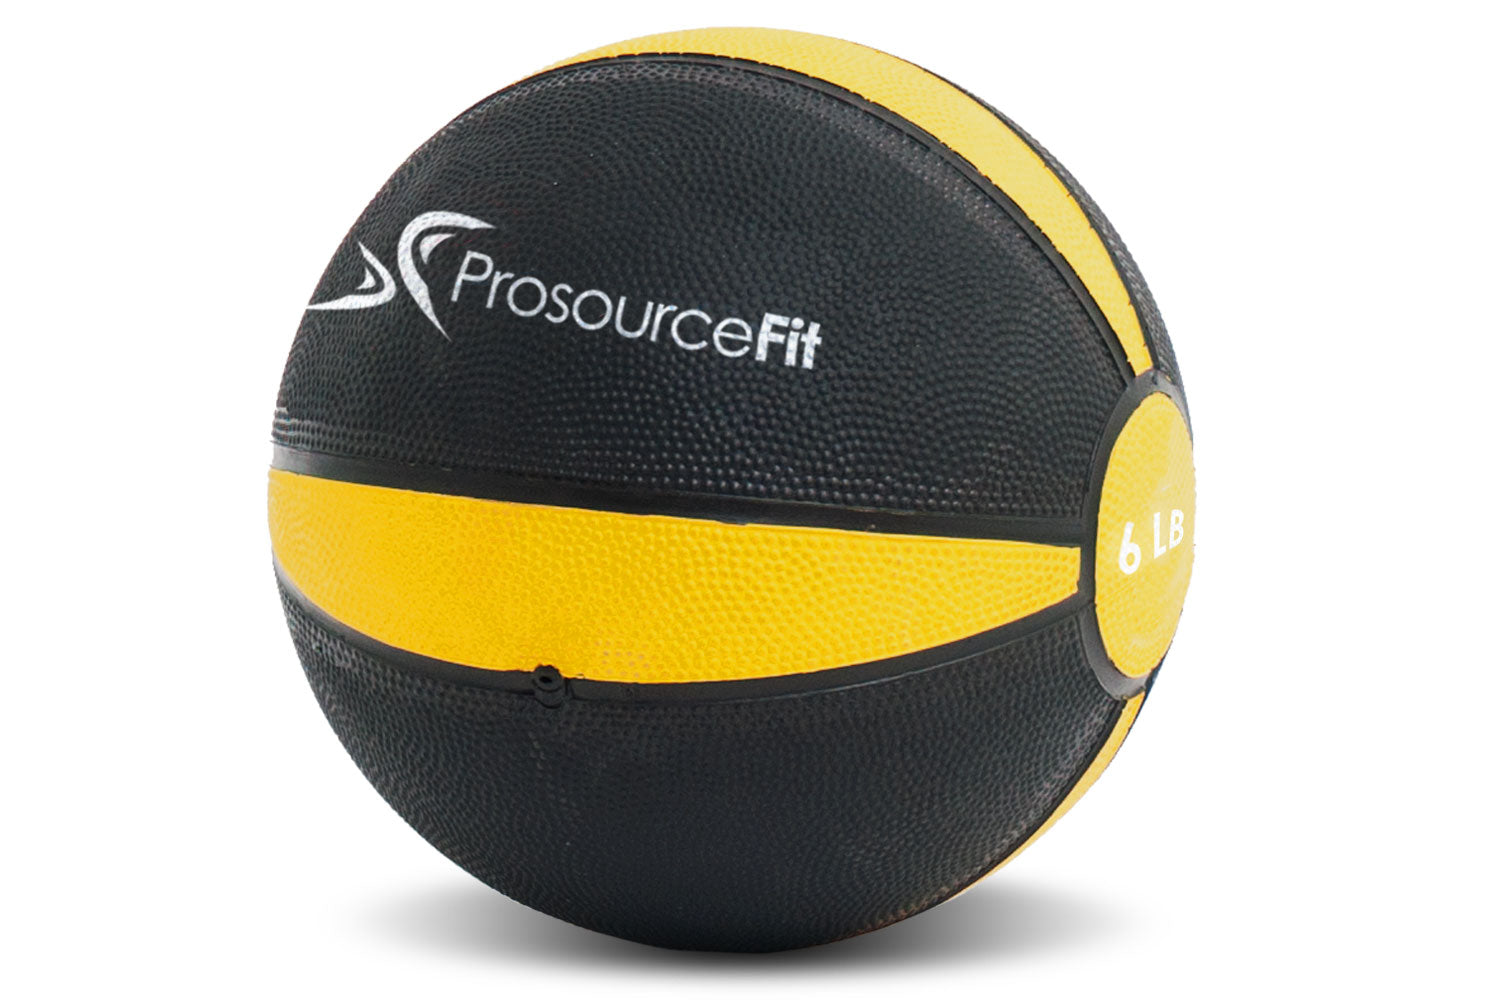 6 lb Rubber Medicine Ball